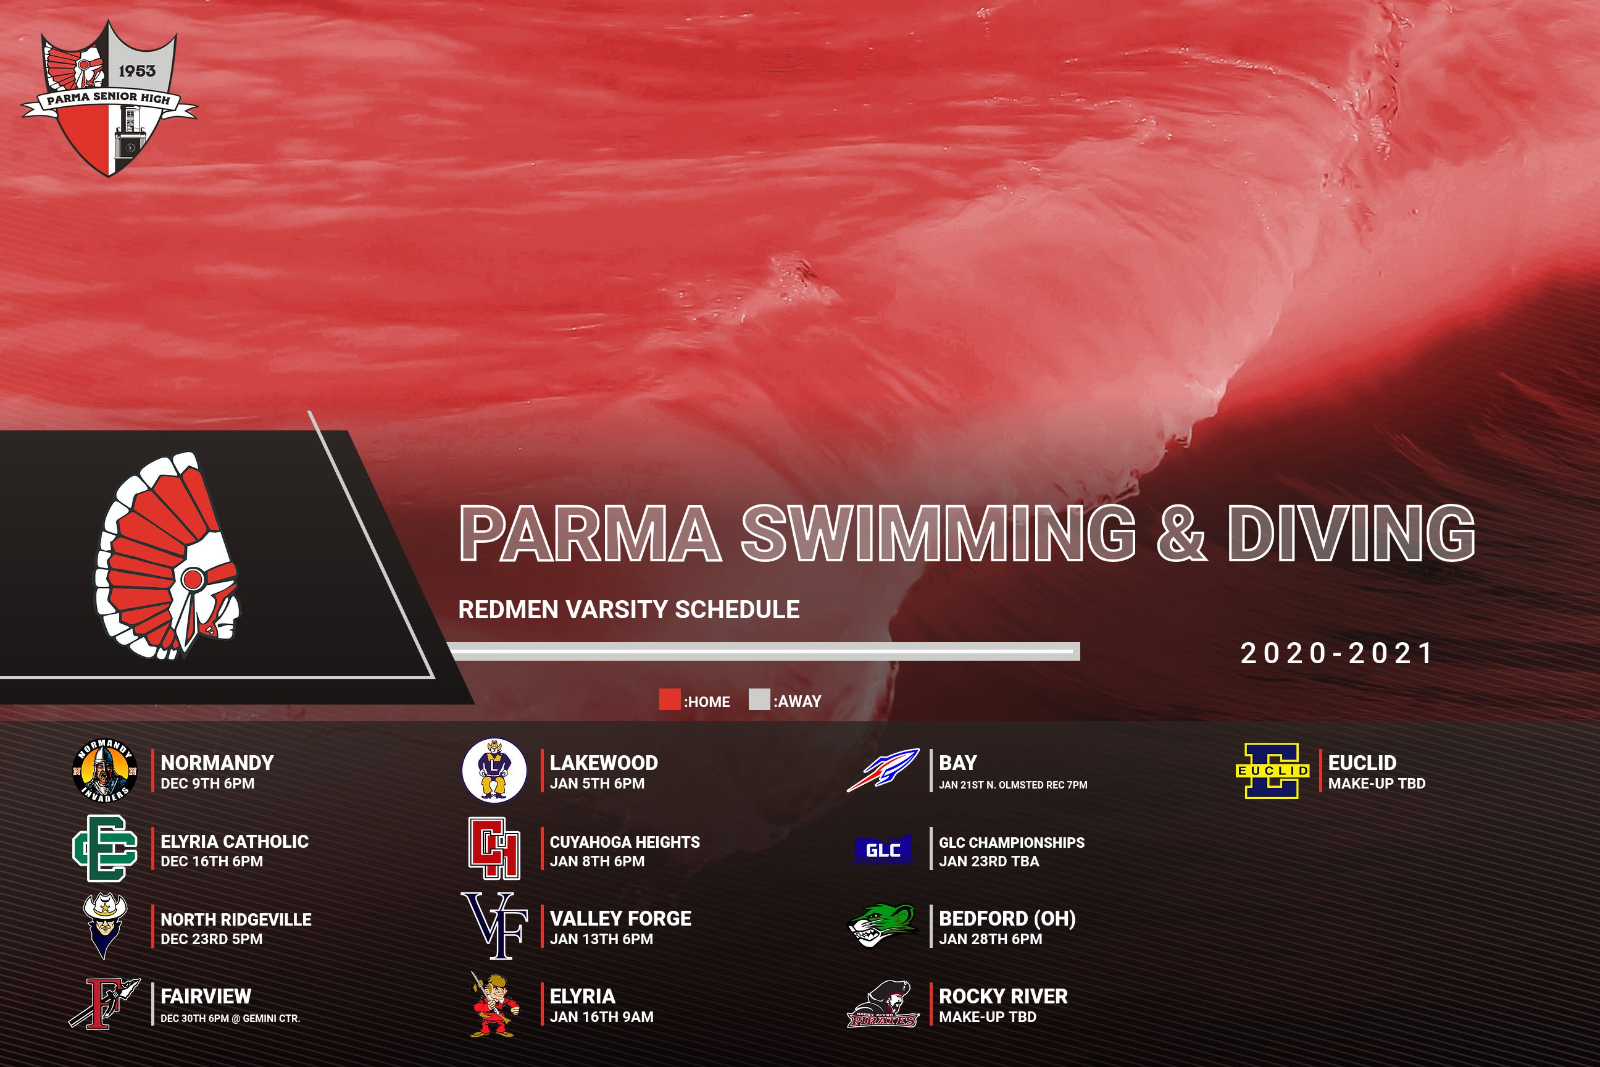 2020-21 Parma Swimming & Diving Meet Schedule